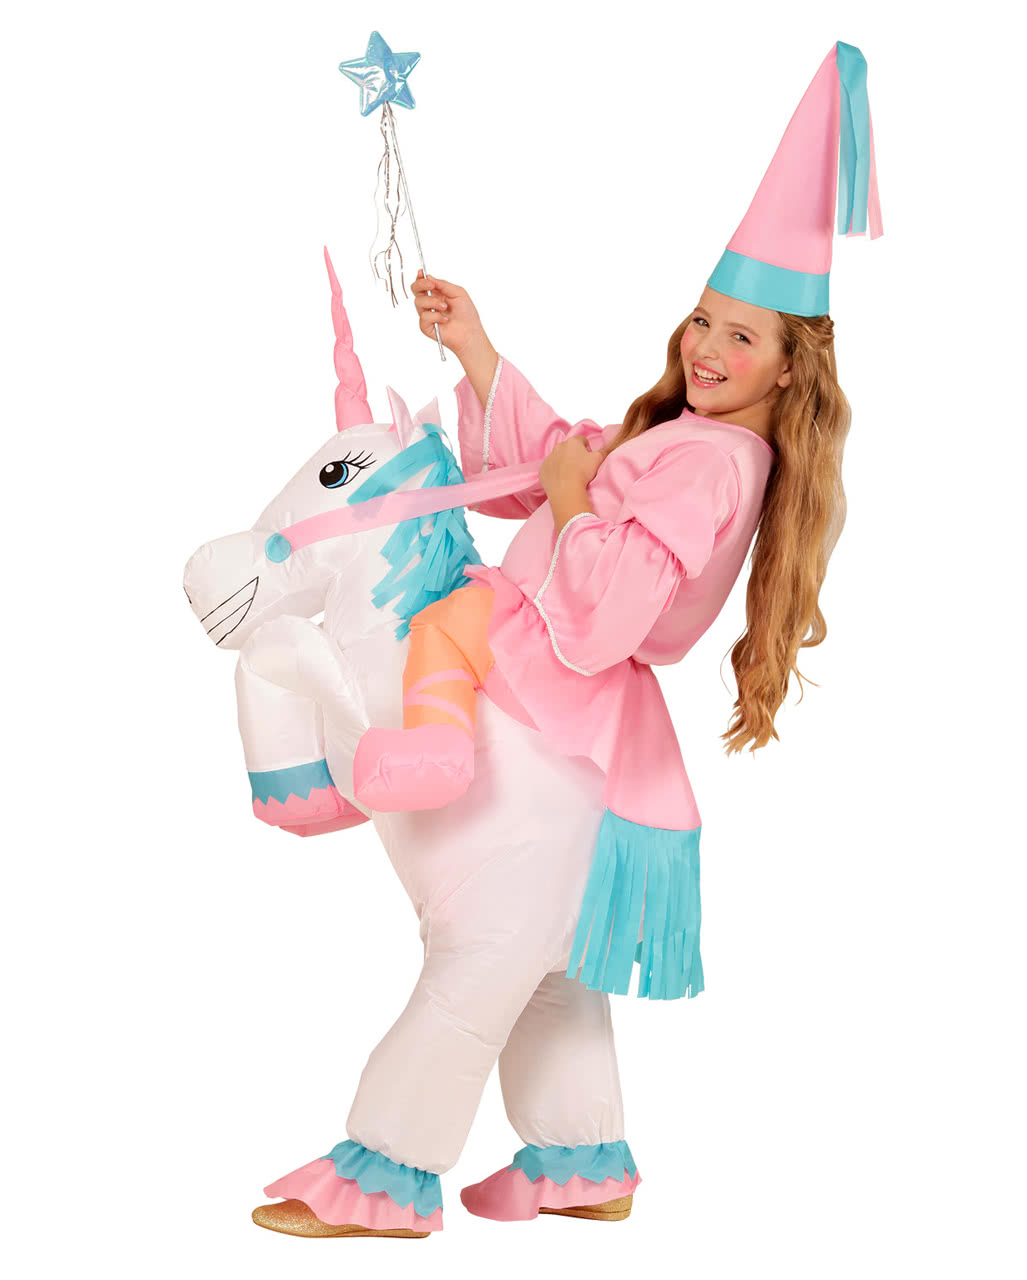 8edd7fc0f12a Unicorn Costume For Girls Inflatable As a fairytale costume